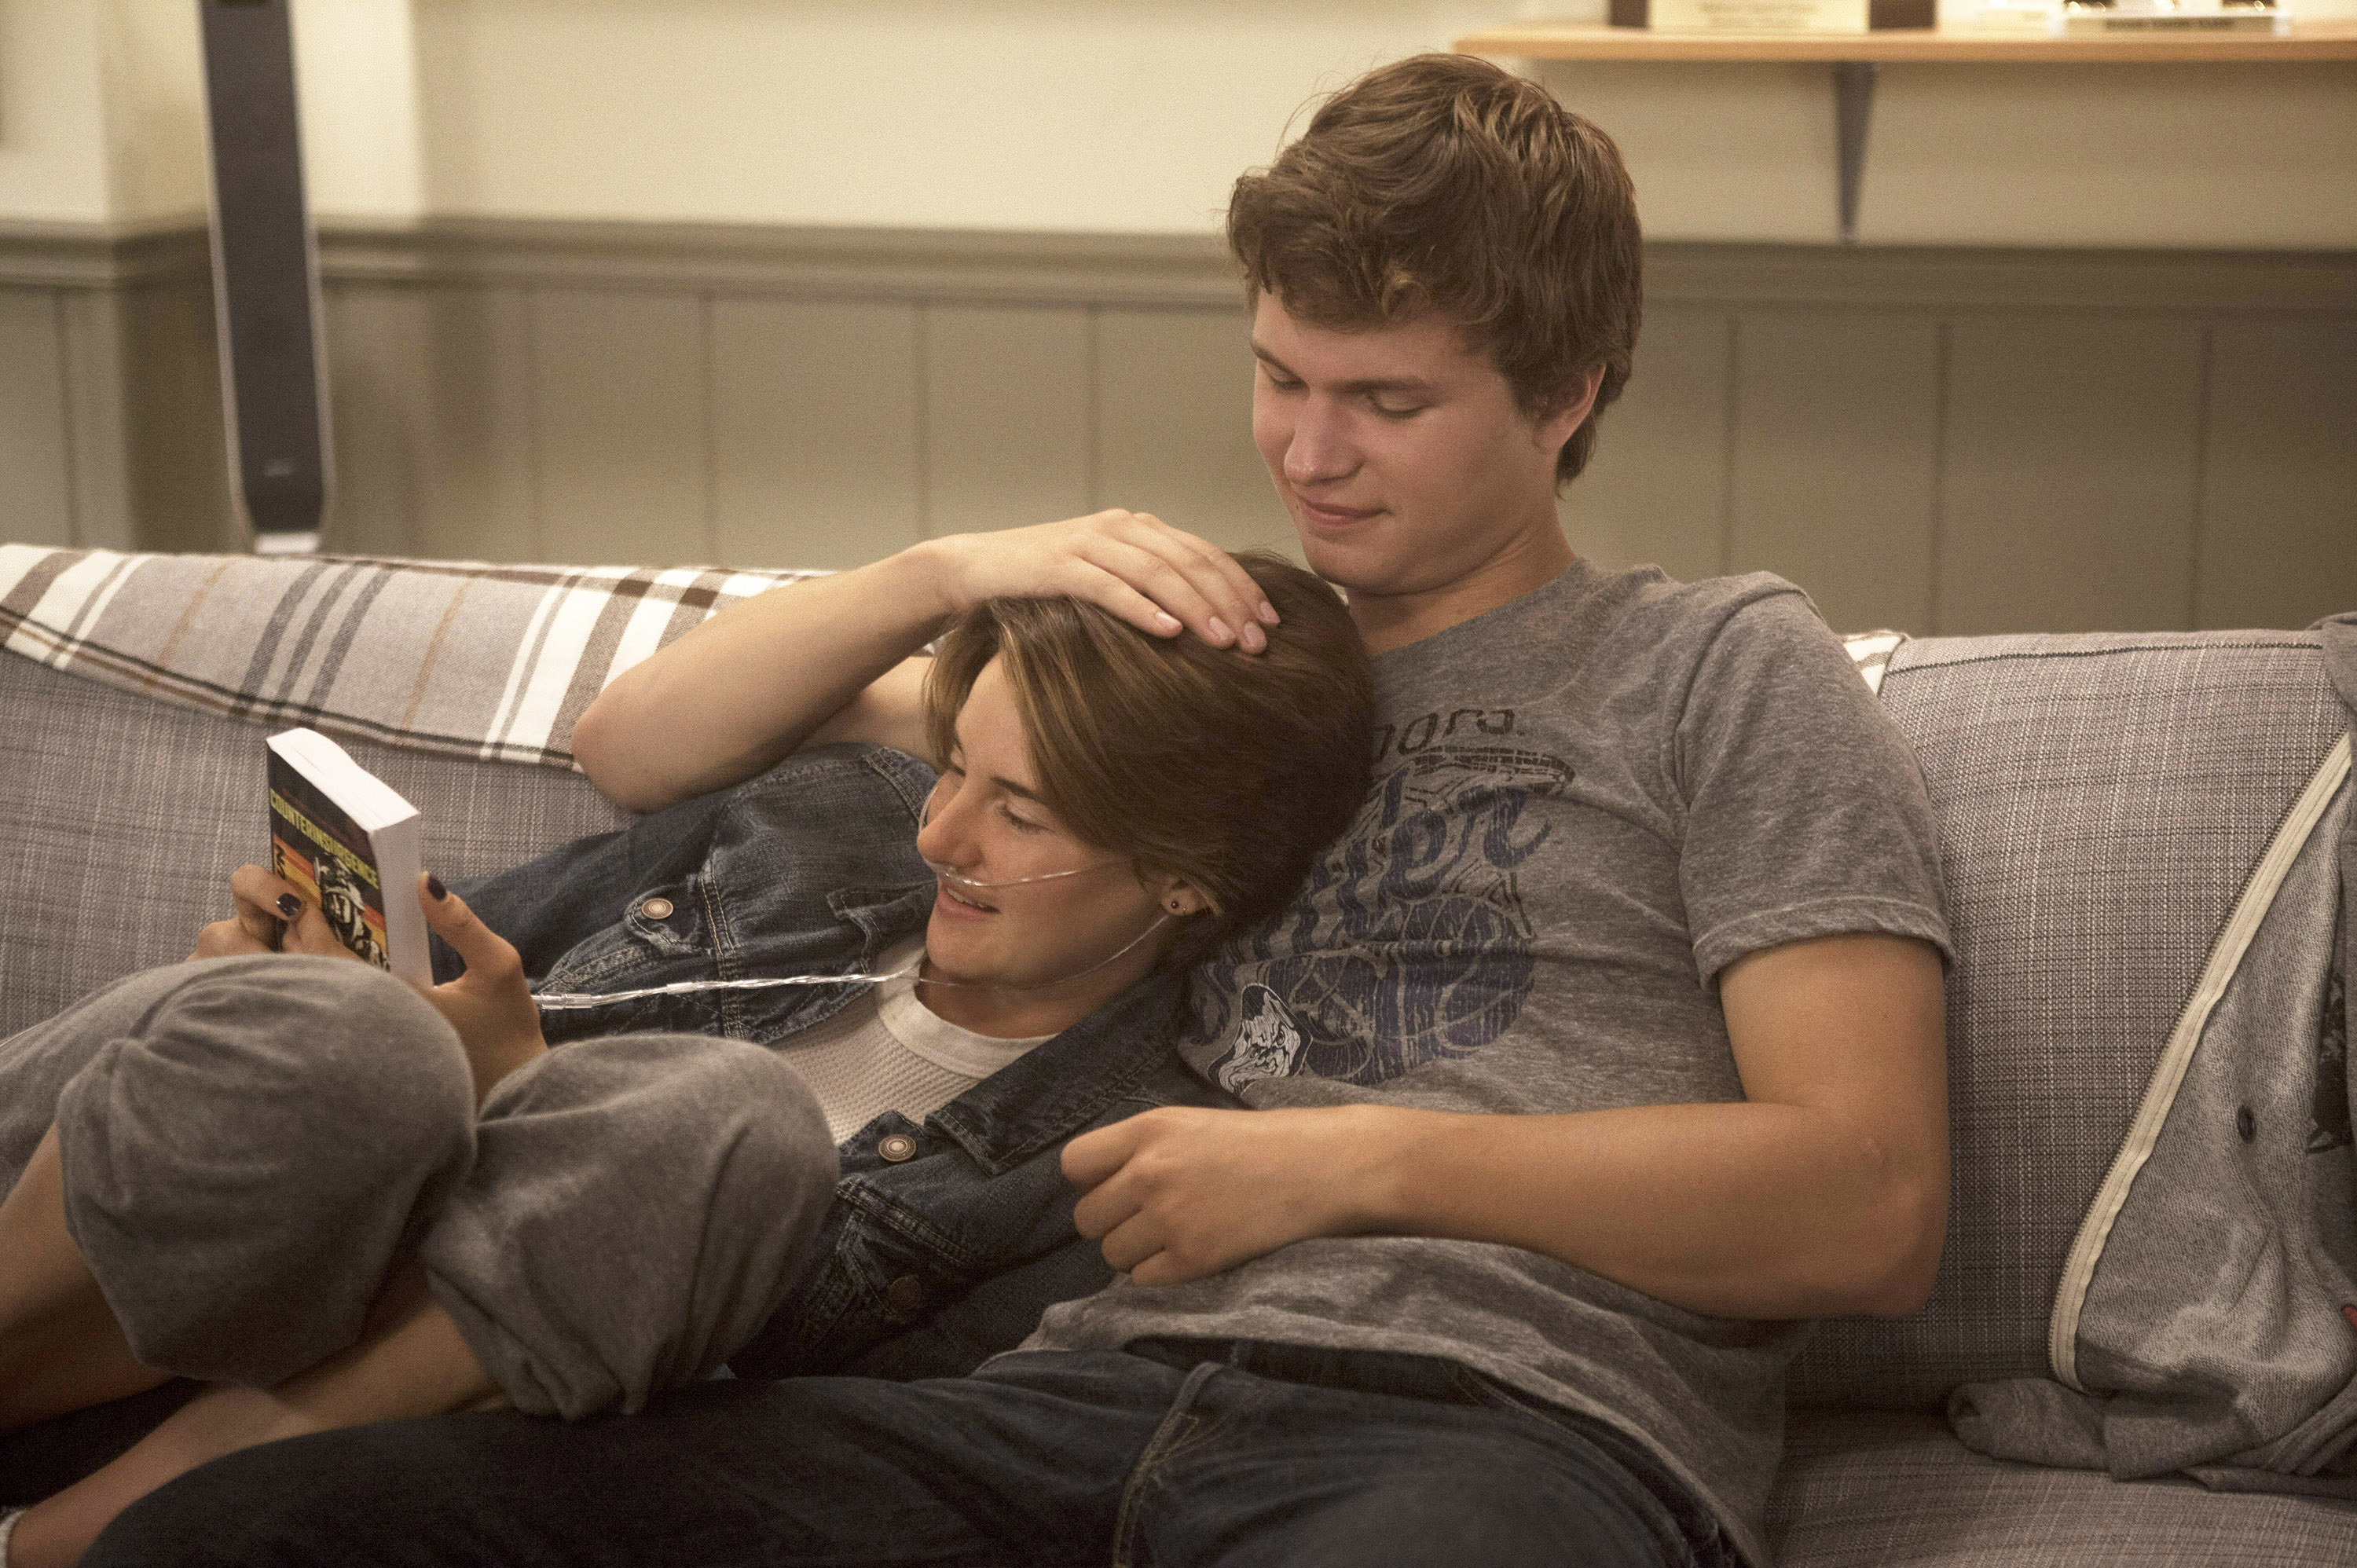 Shailene Woodley looking at a book while cuddling with Ansel Elgort